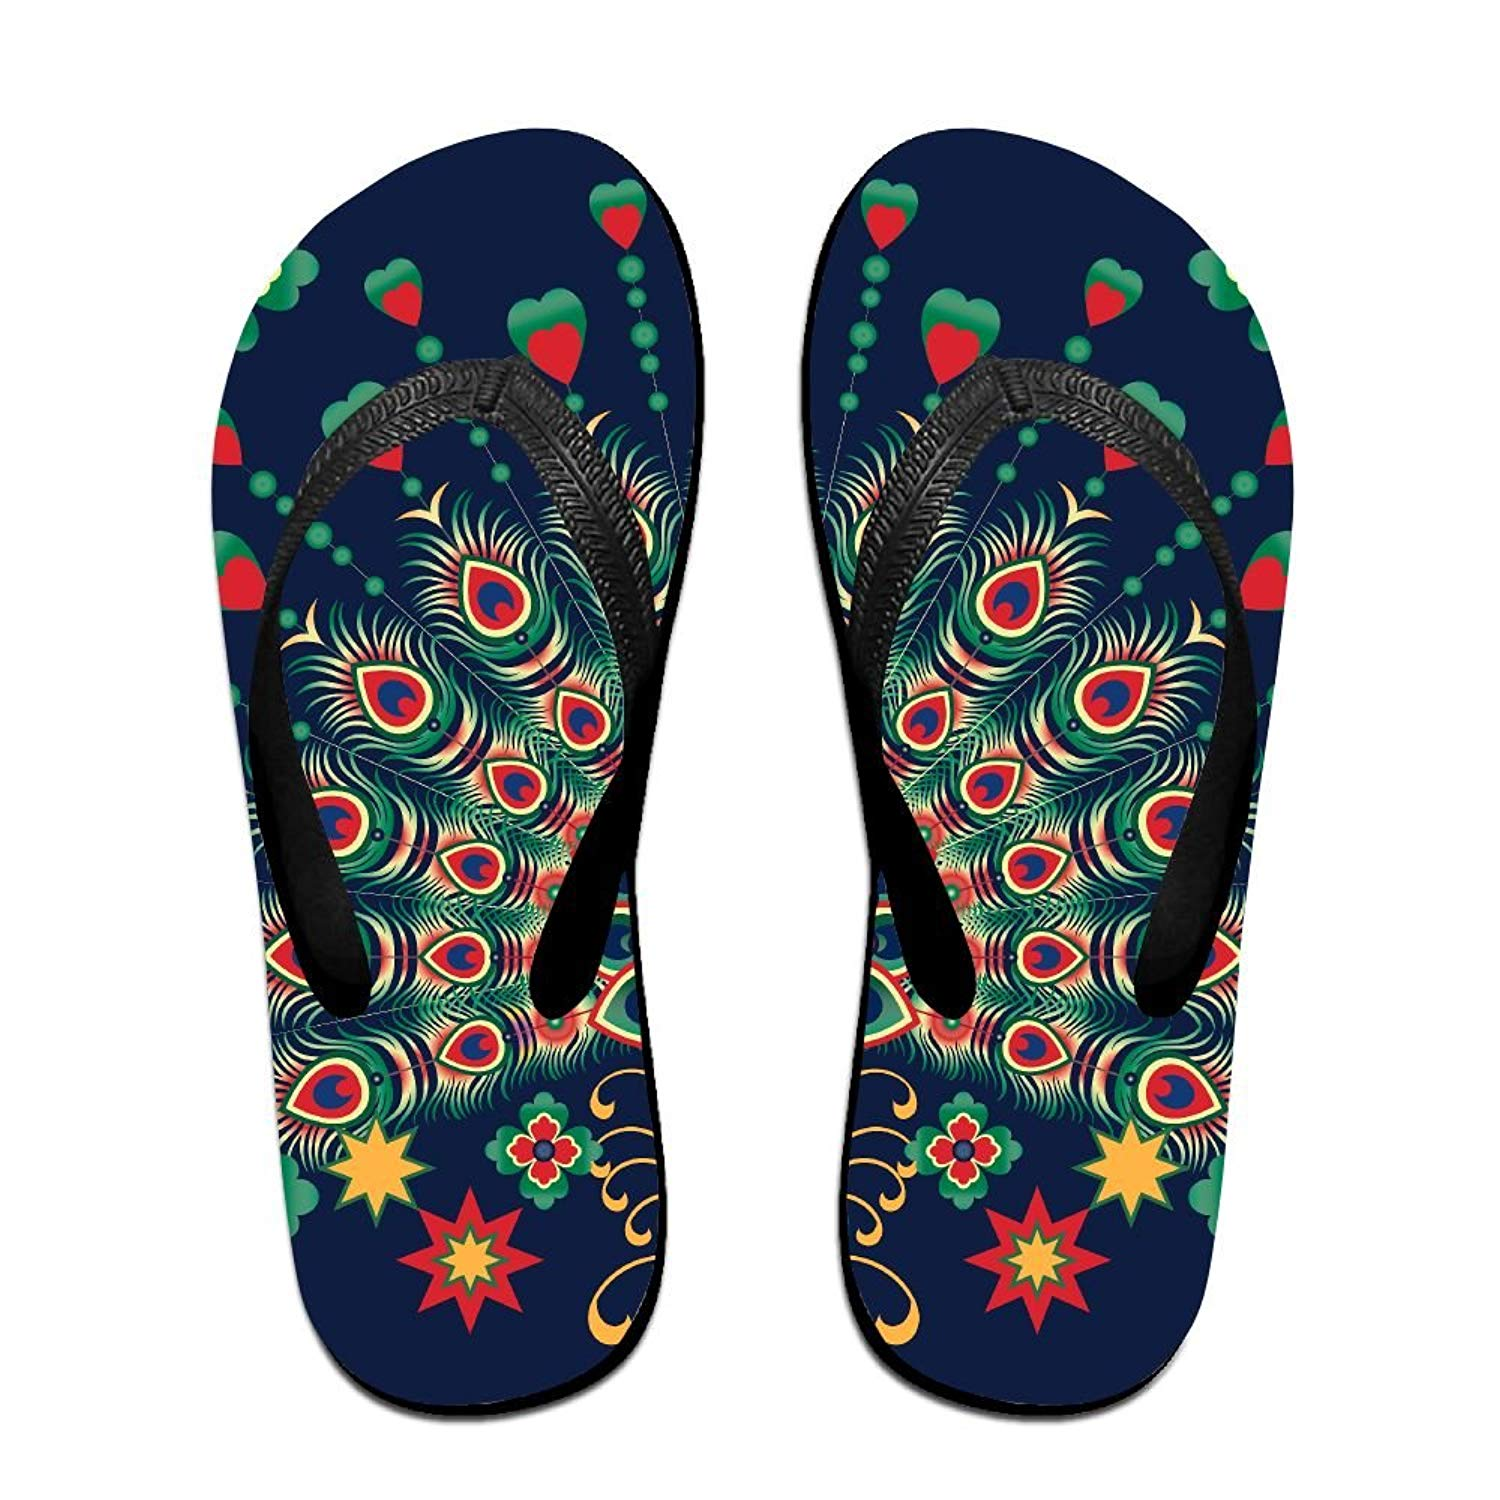 8fc37ac7d Get Quotations · Beautiful Shiny Peacock Fun Flip Flops Thong Sandals,  Beach Sandals, Casual And Comfortable Sandals